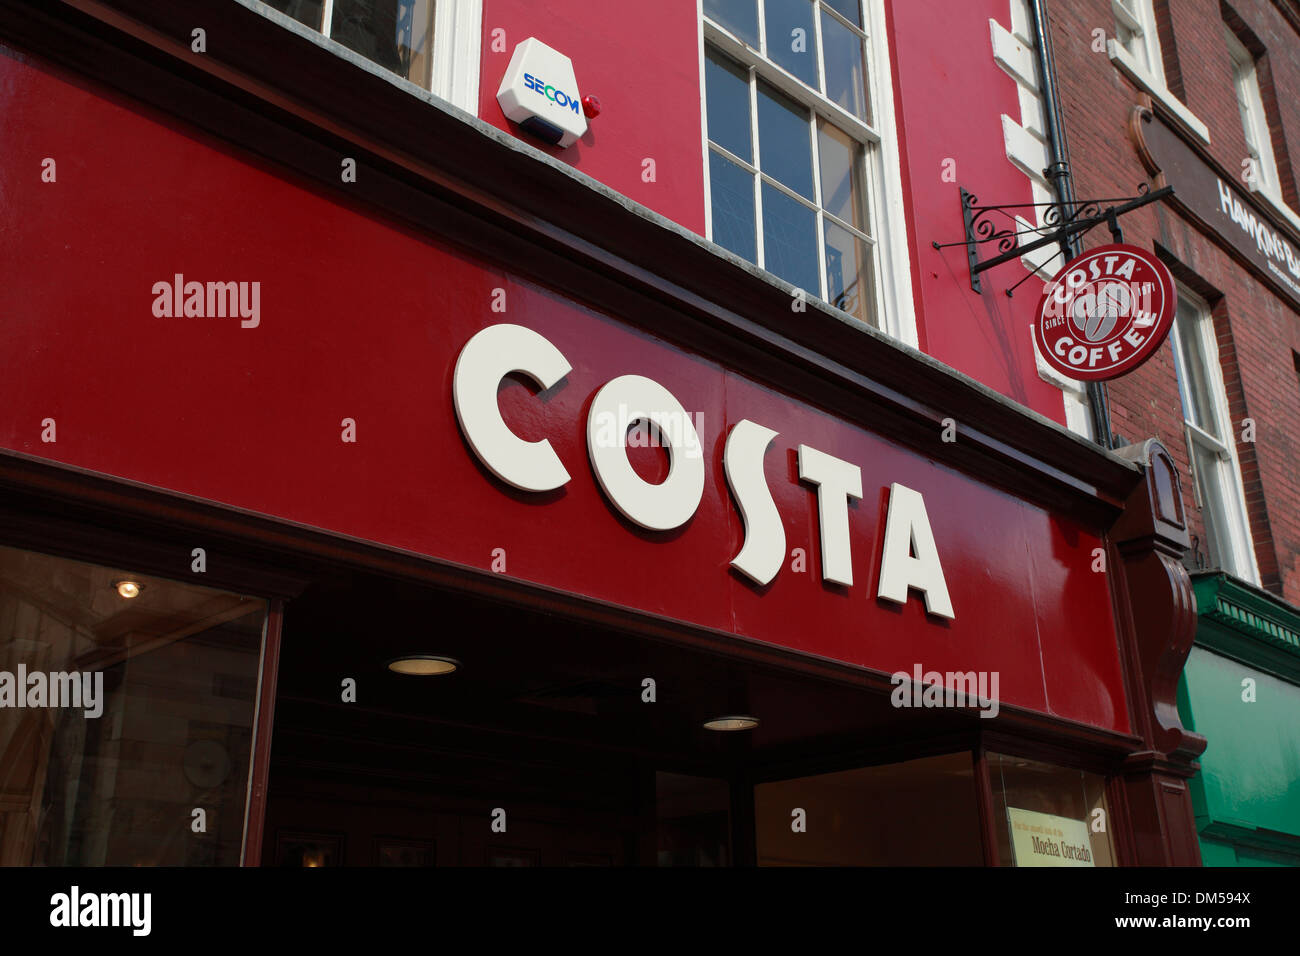 76dcb60f886a Costa Coffee Stock Photos & Costa Coffee Stock Images - Alamy